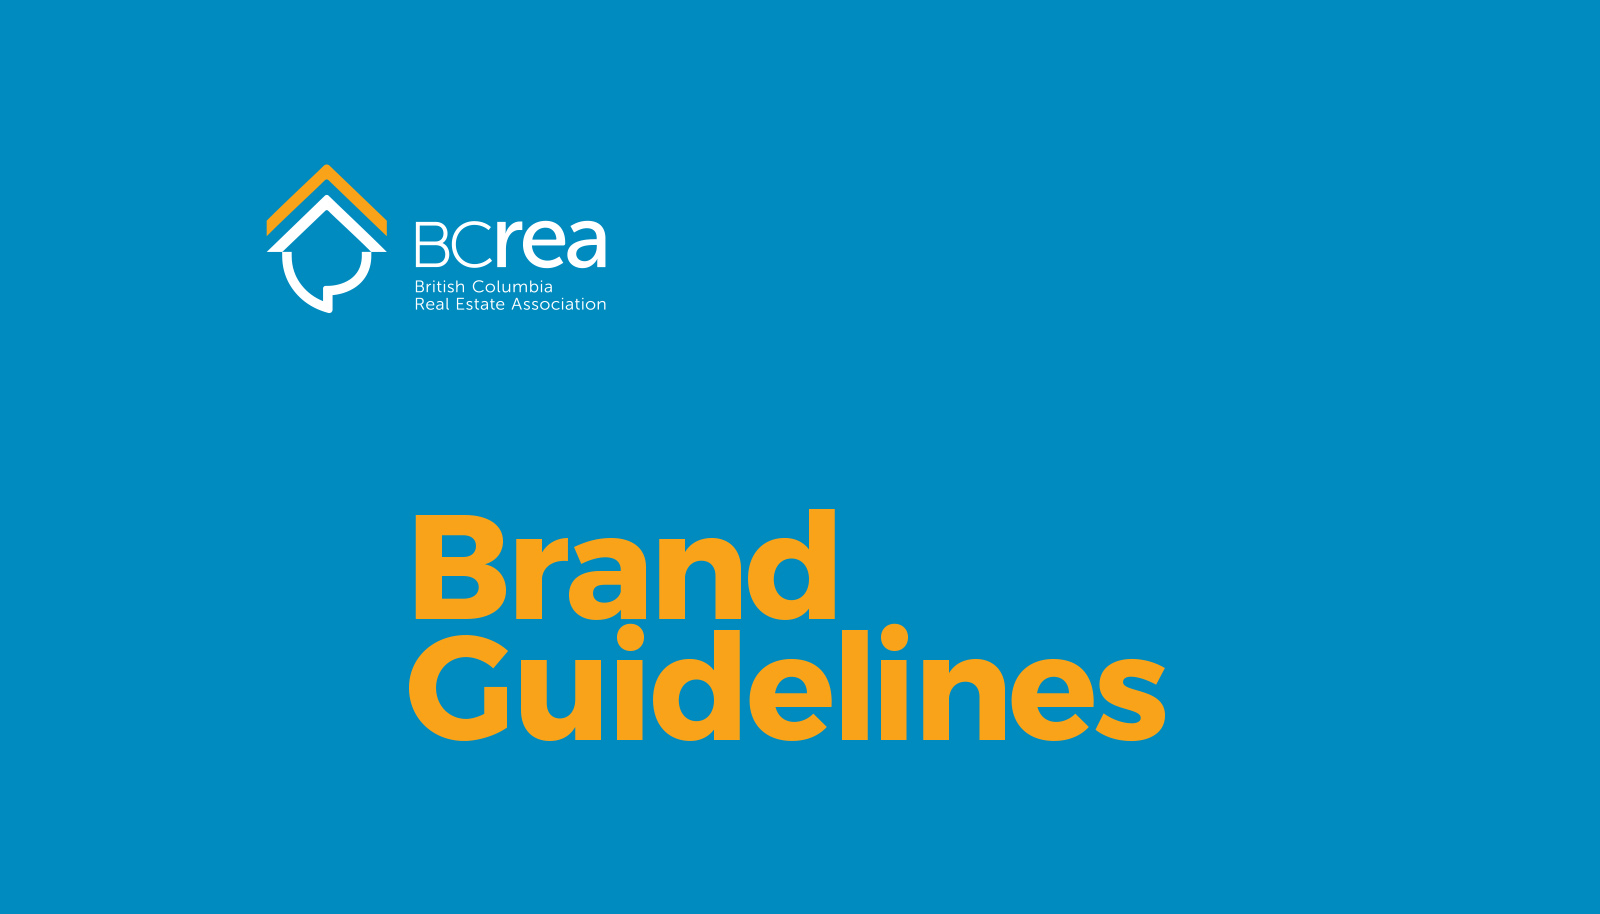 BCREA's brand guidelines